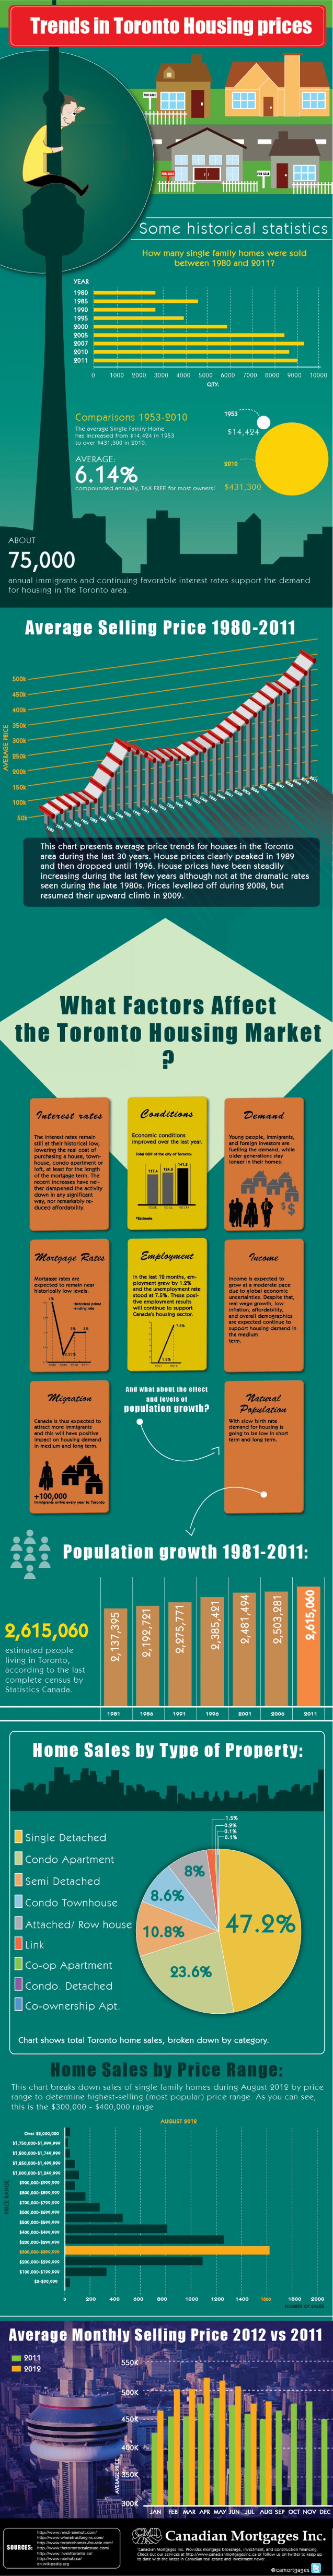 Trends in Toronto Housing prices Infographic